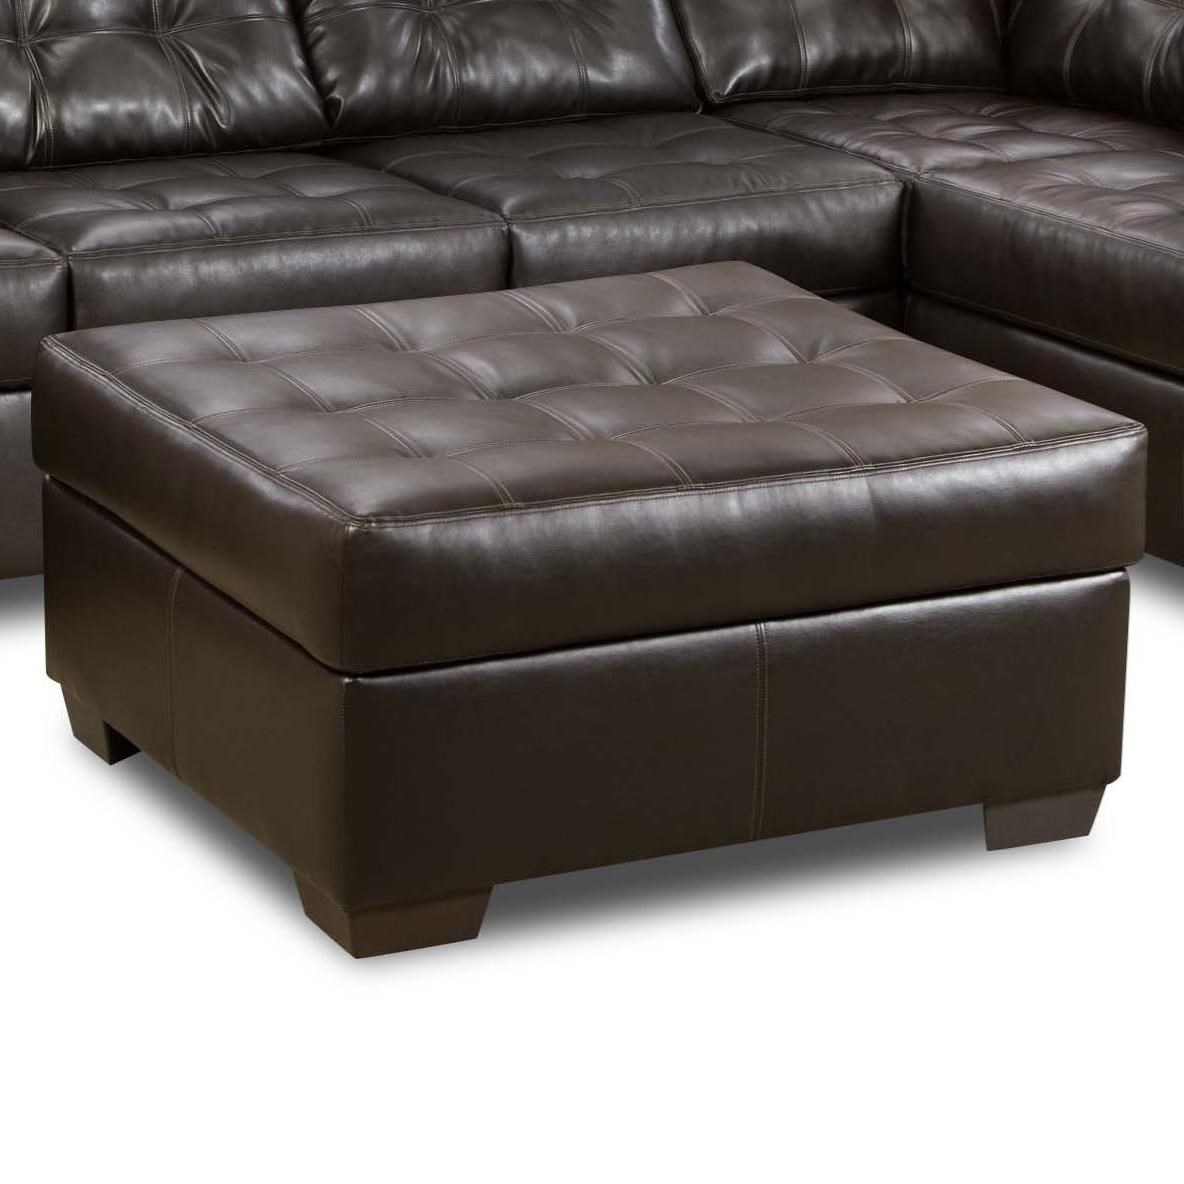 Simmons Upholstery 9590 Tufted Cocktail Ottoman - Item Number: 9590CocktailOttoman-Espresso